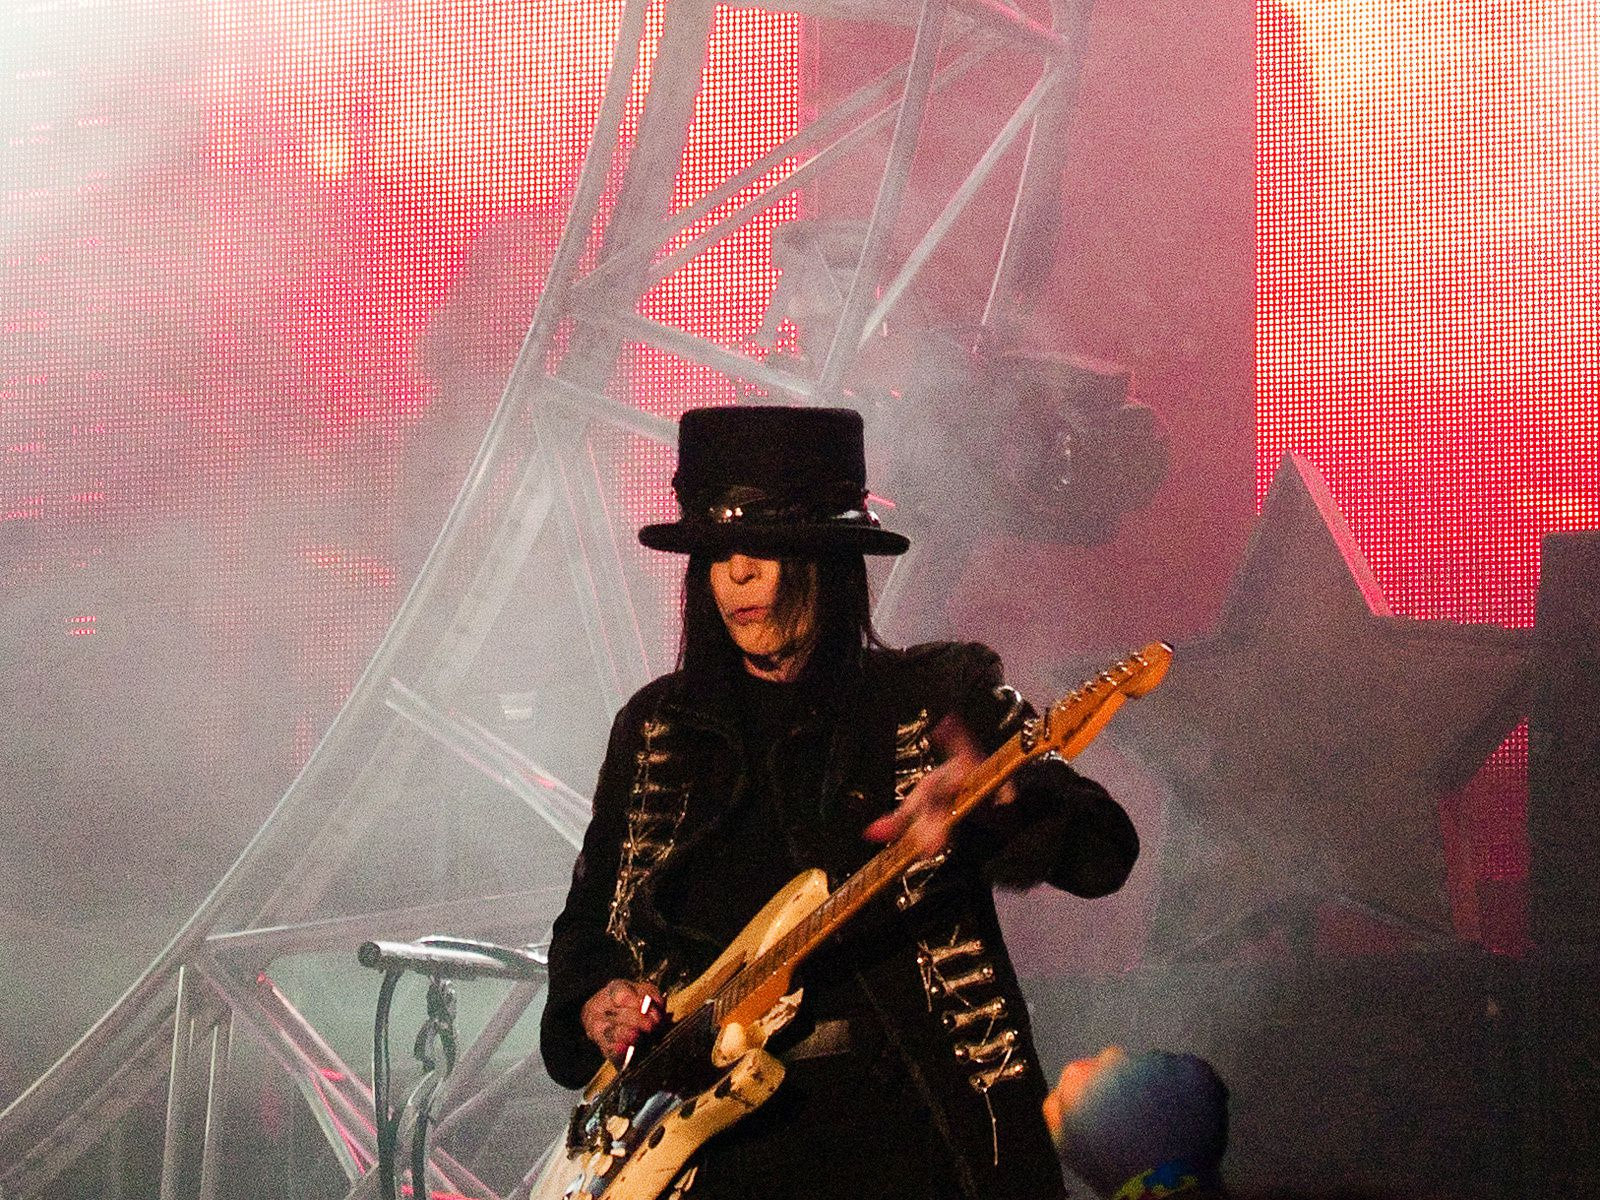 Mick Mars - 2011 - Mötley Crüe, Manchester - credit: Ingy The Wingy